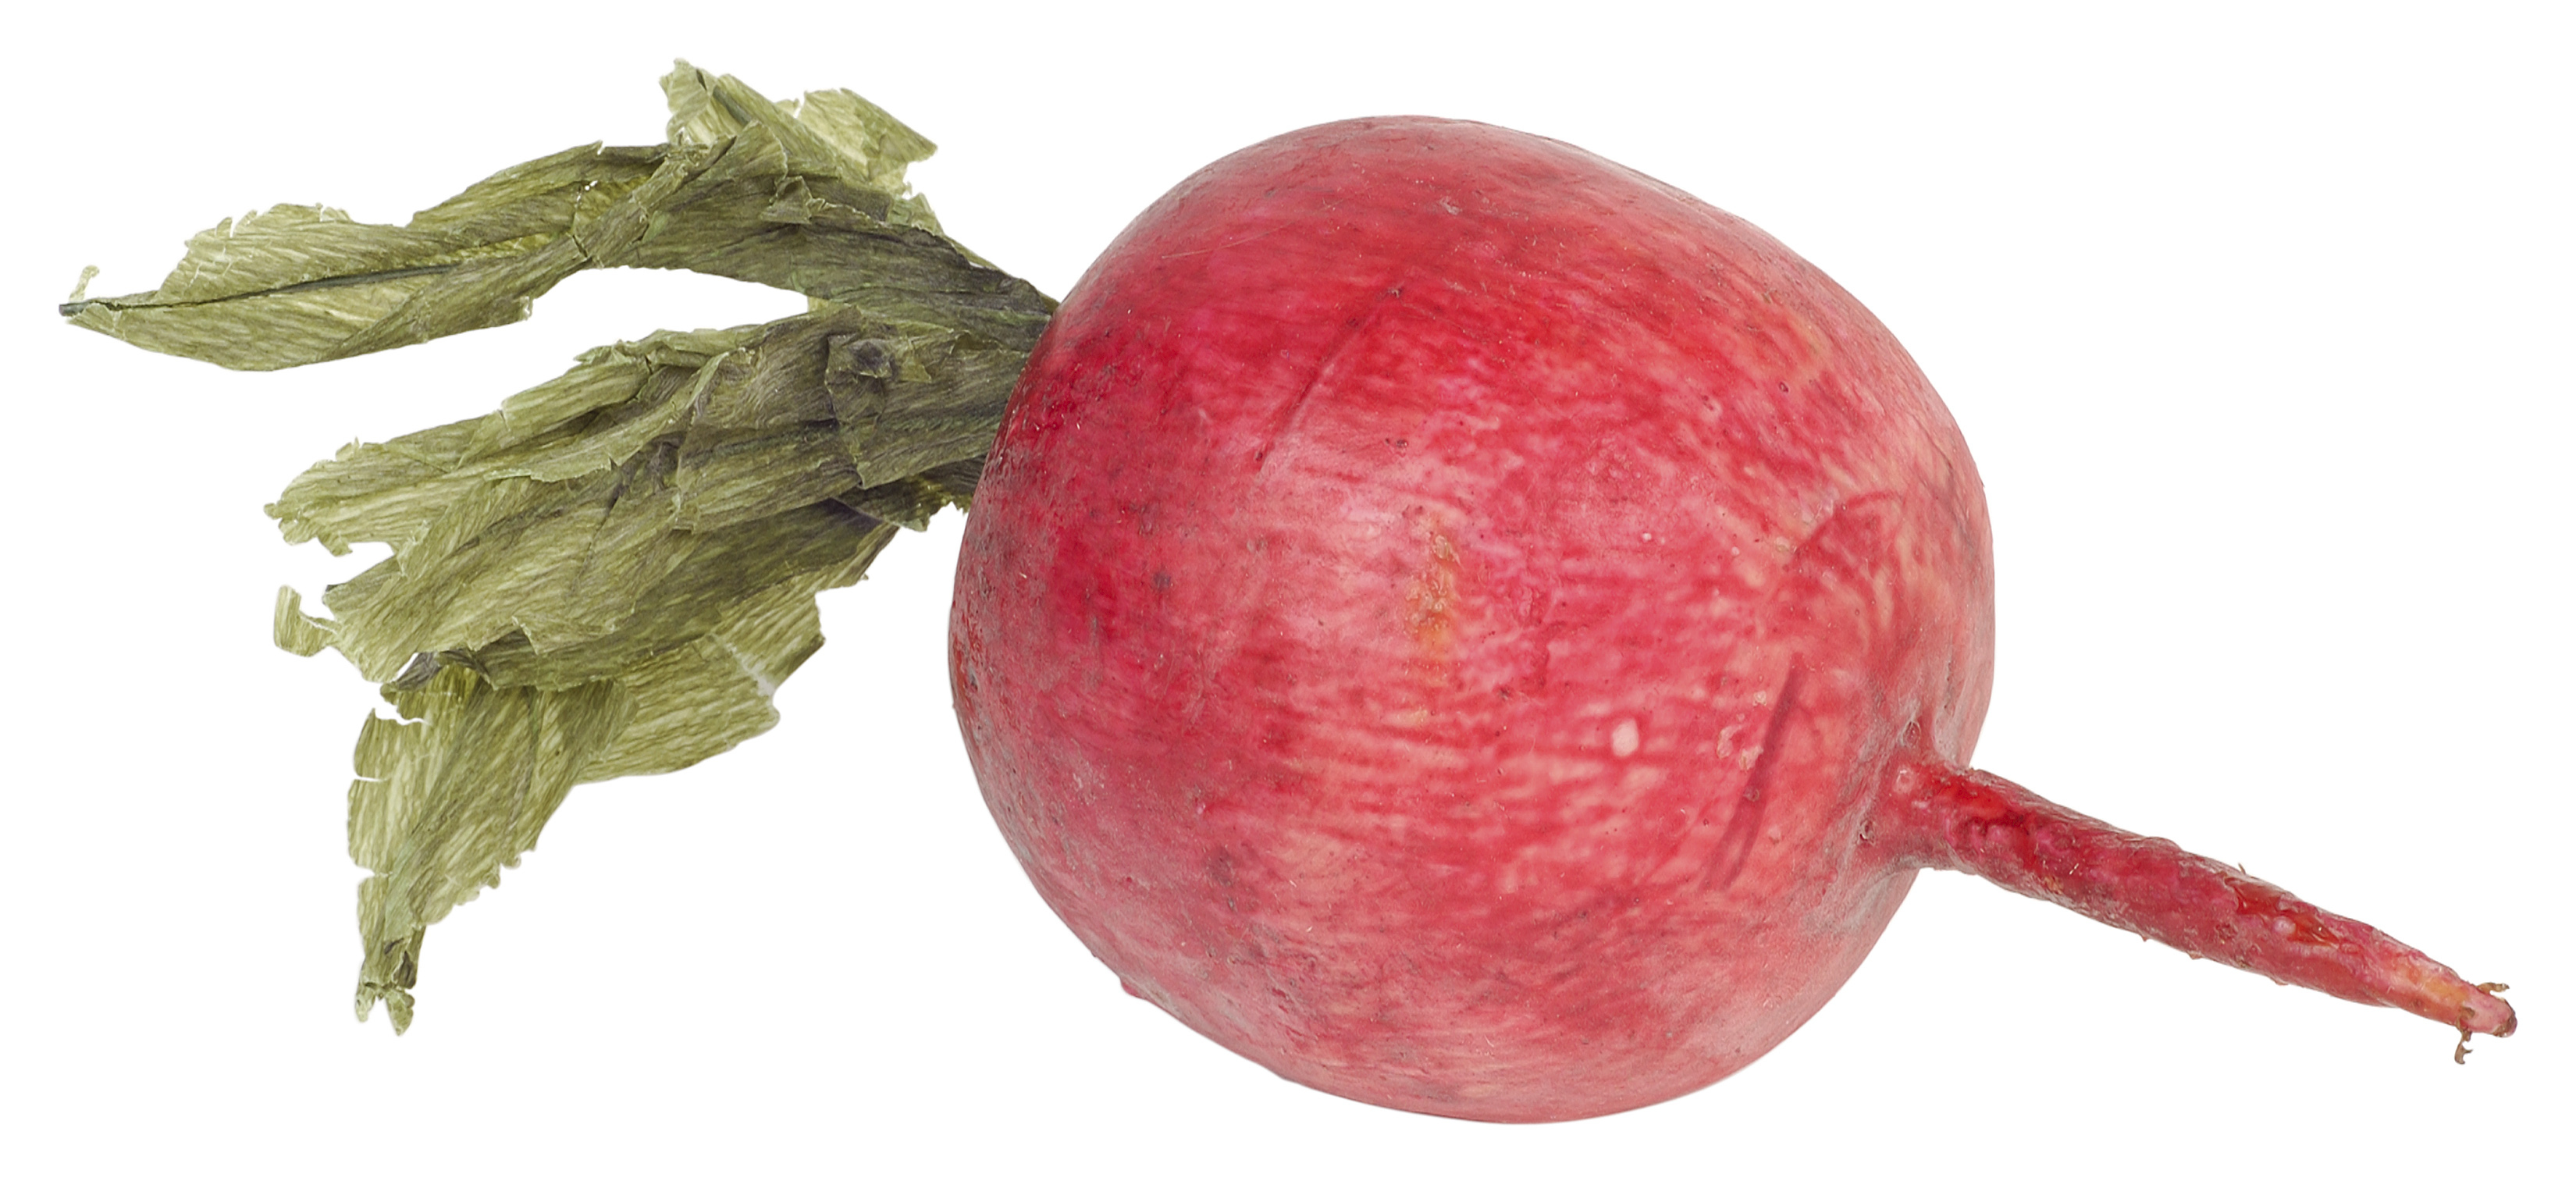 Eating plenty of vegetables, such as beets, supports liver enzyme health.